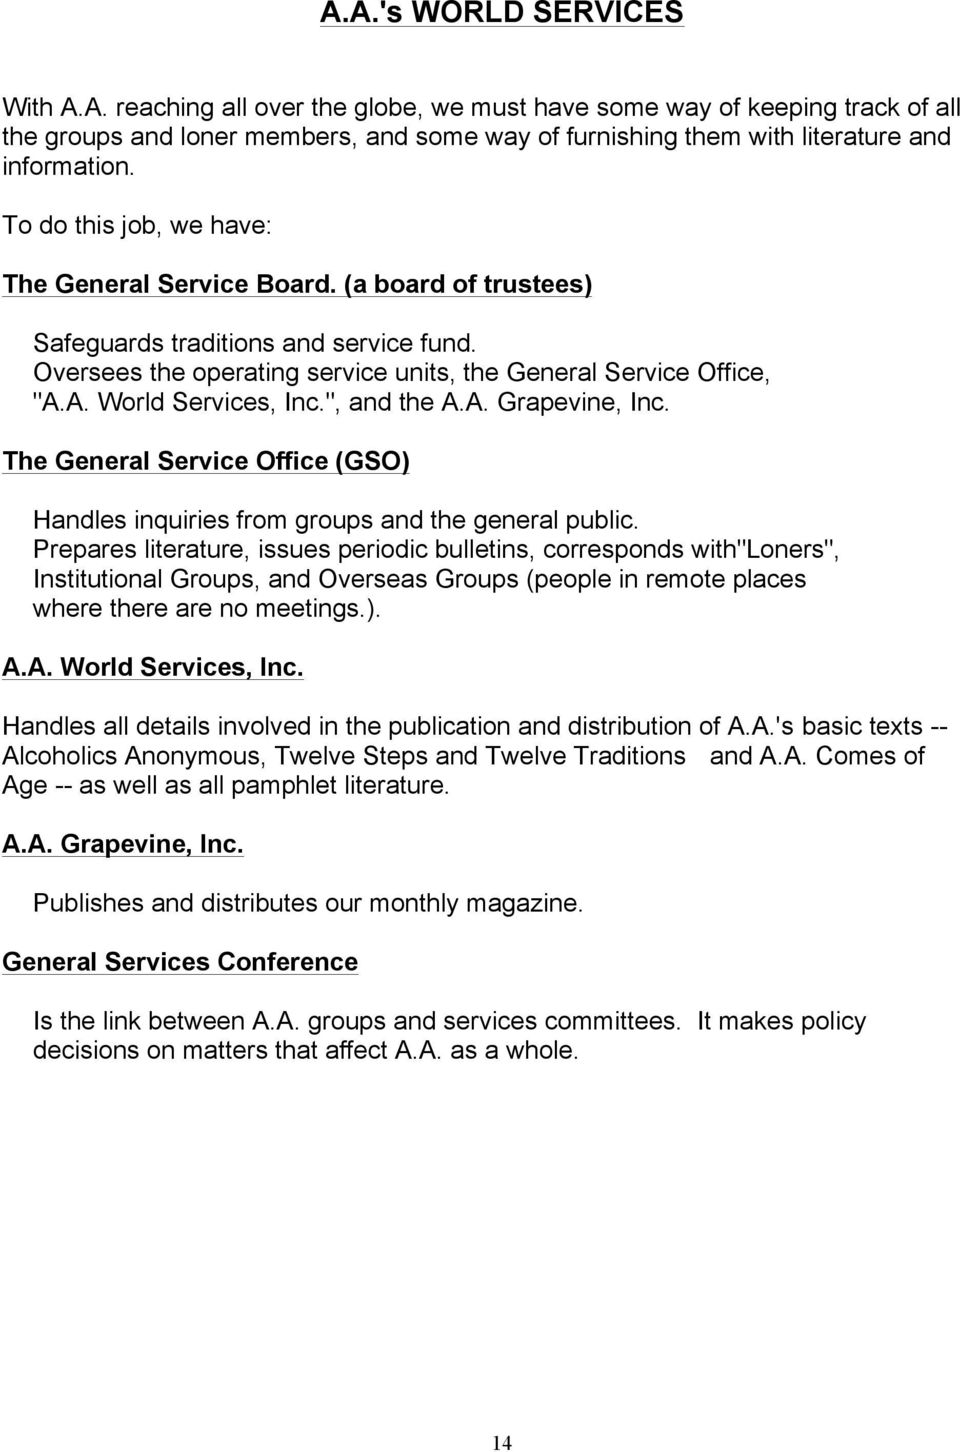 "A. World Services, Inc."", and the A.A. Grapevine, Inc. The General Service Office (GSO) Handles inquiries from groups and the general public."